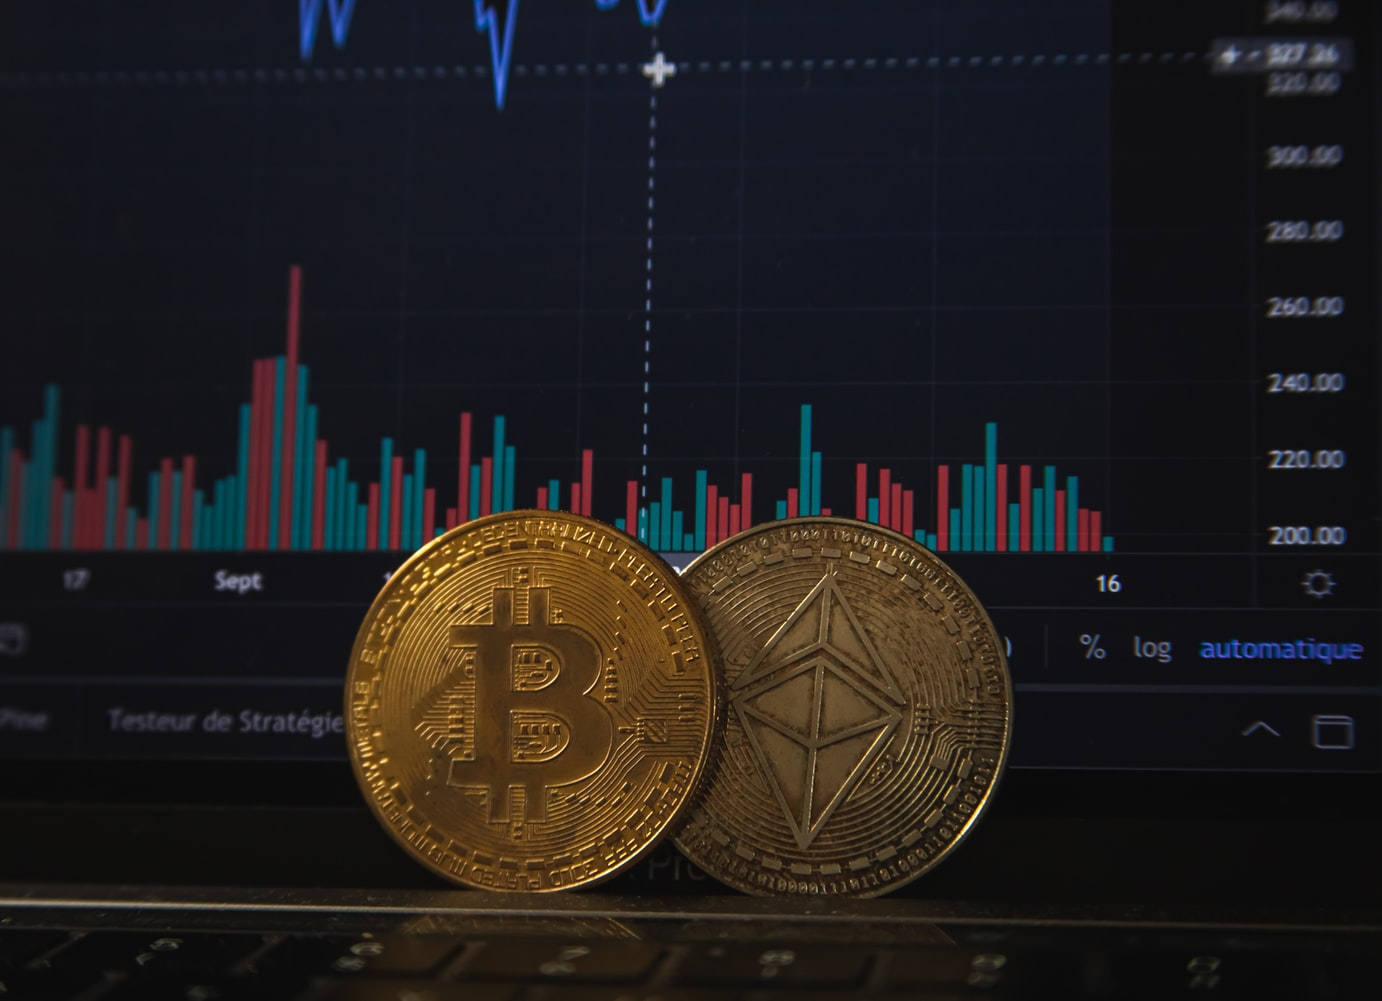 Process of bitcoin and risks or benefits while investing